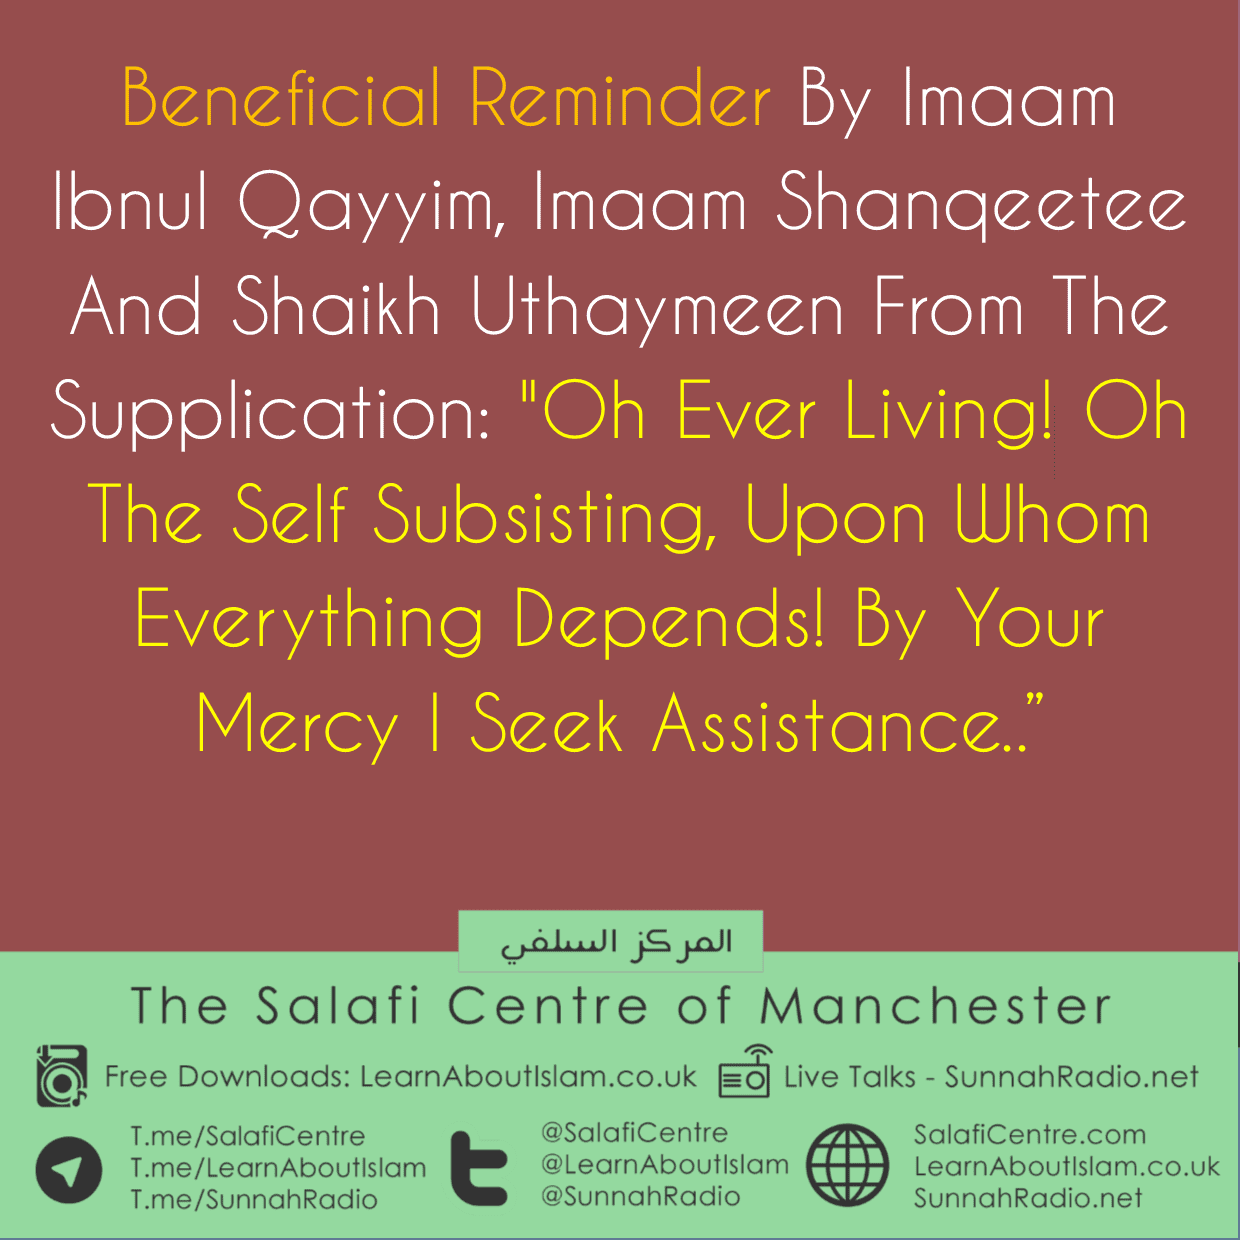 Beneficial Reminders from a Supplication of the Morning: [Oh Ever Living! Oh The Self Subsisting, Upon Whom Everything Depends! By Your Mercy I Seek Assistance